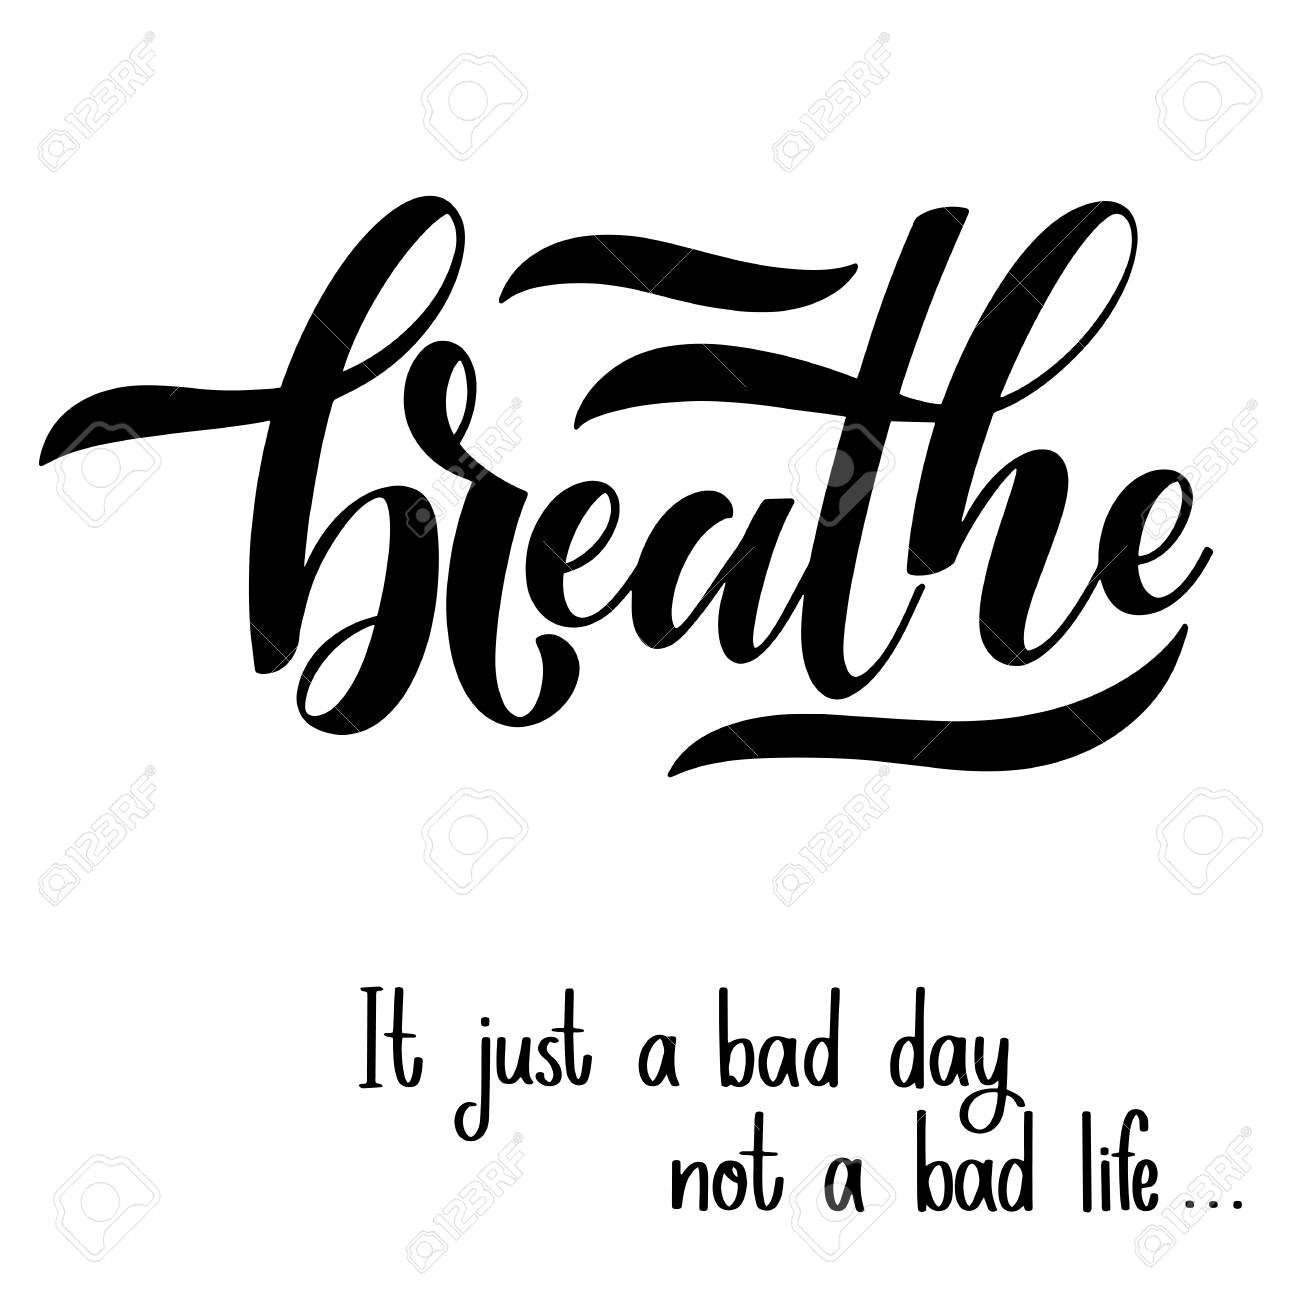 Motivational And Inspirational Quotes For Mental Health Day